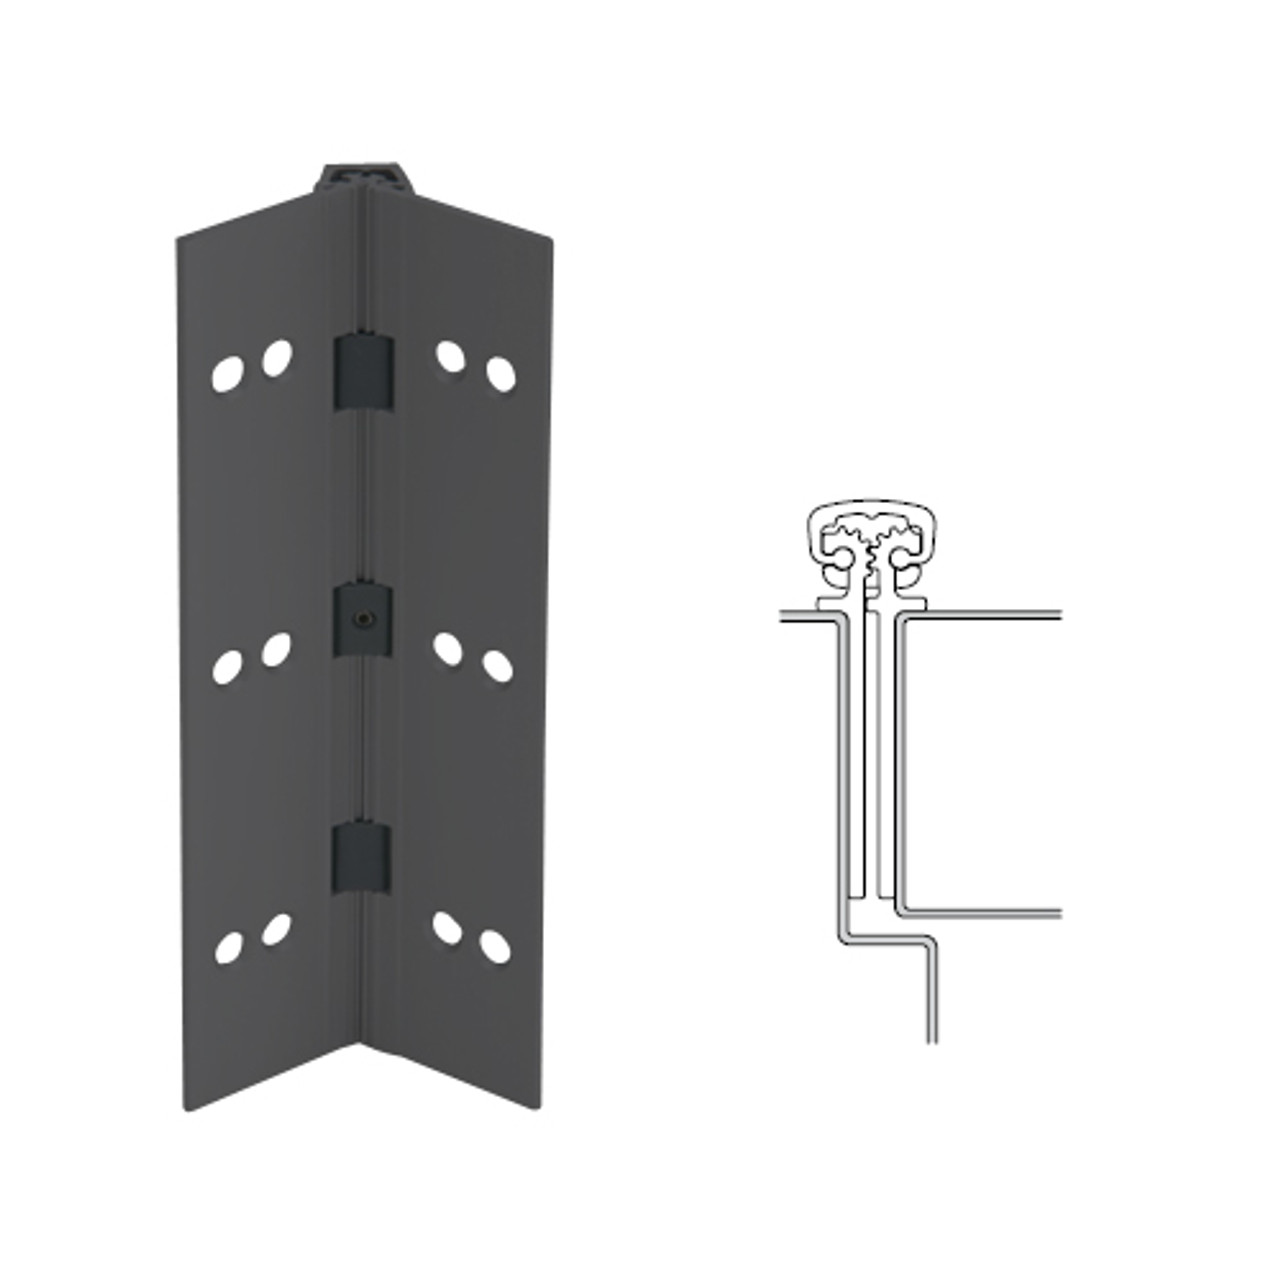 027XY-315AN-95-SECHM IVES Full Mortise Continuous Geared Hinges with Security Screws - Hex Pin Drive in Anodized Black